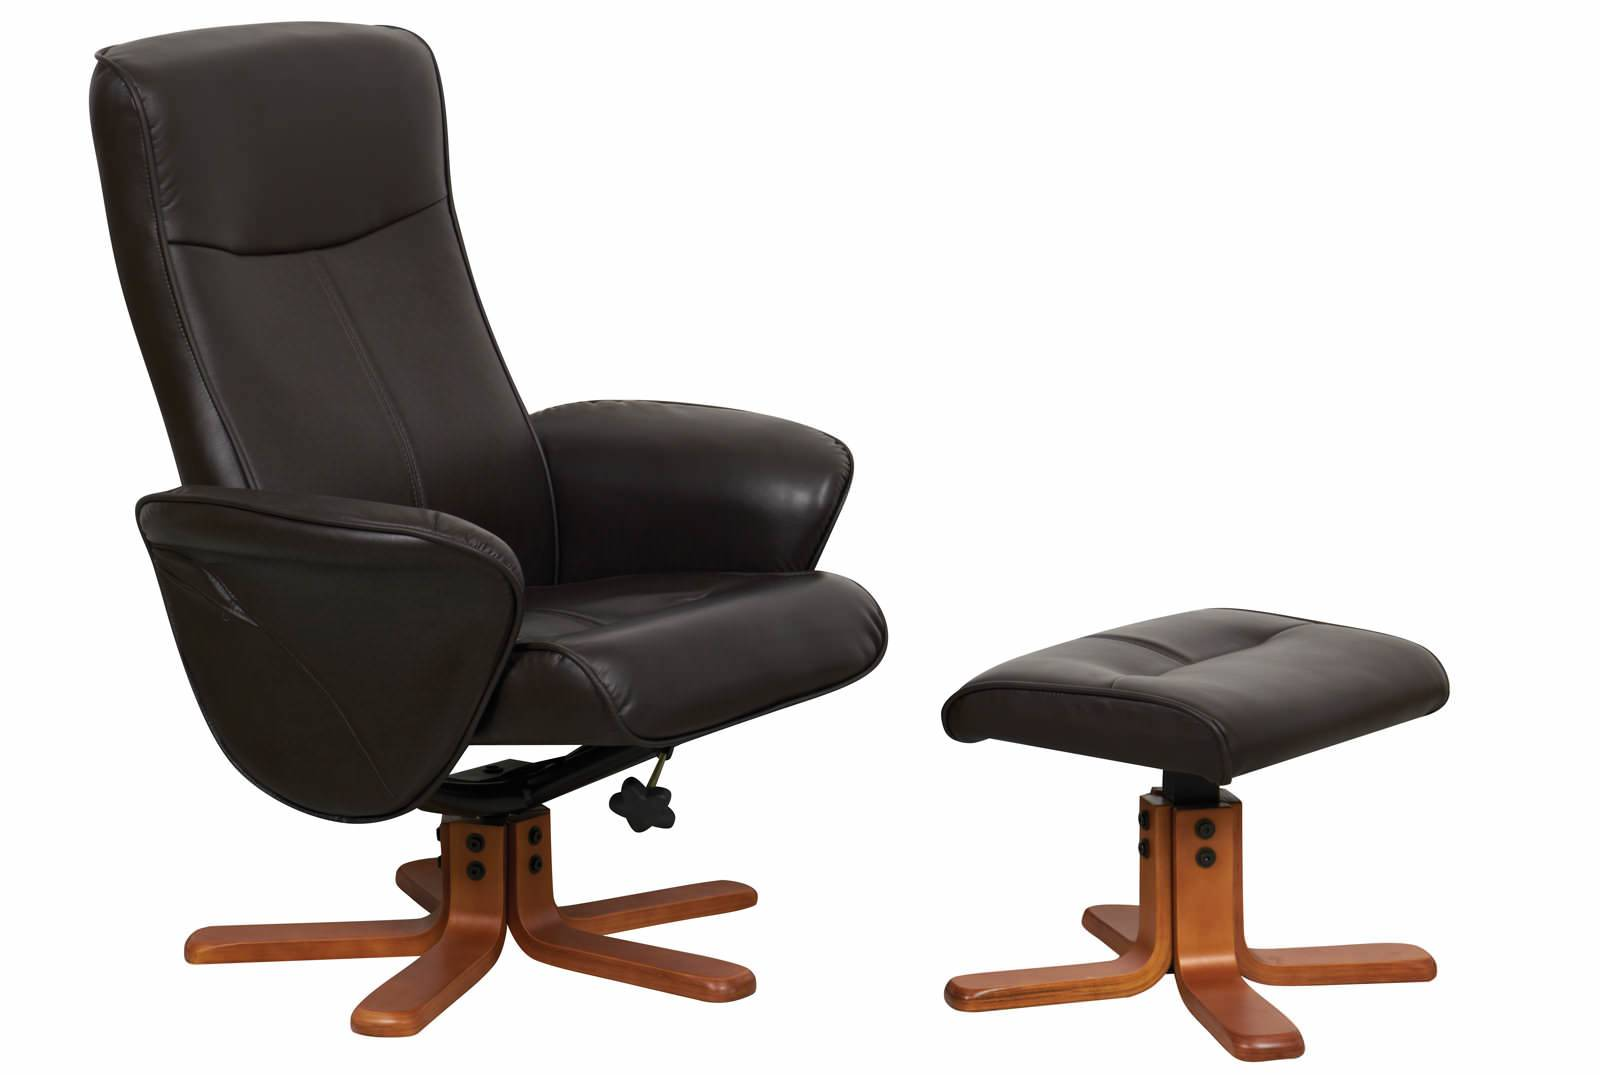 swivel chairs interesting reception chairs leather swivel